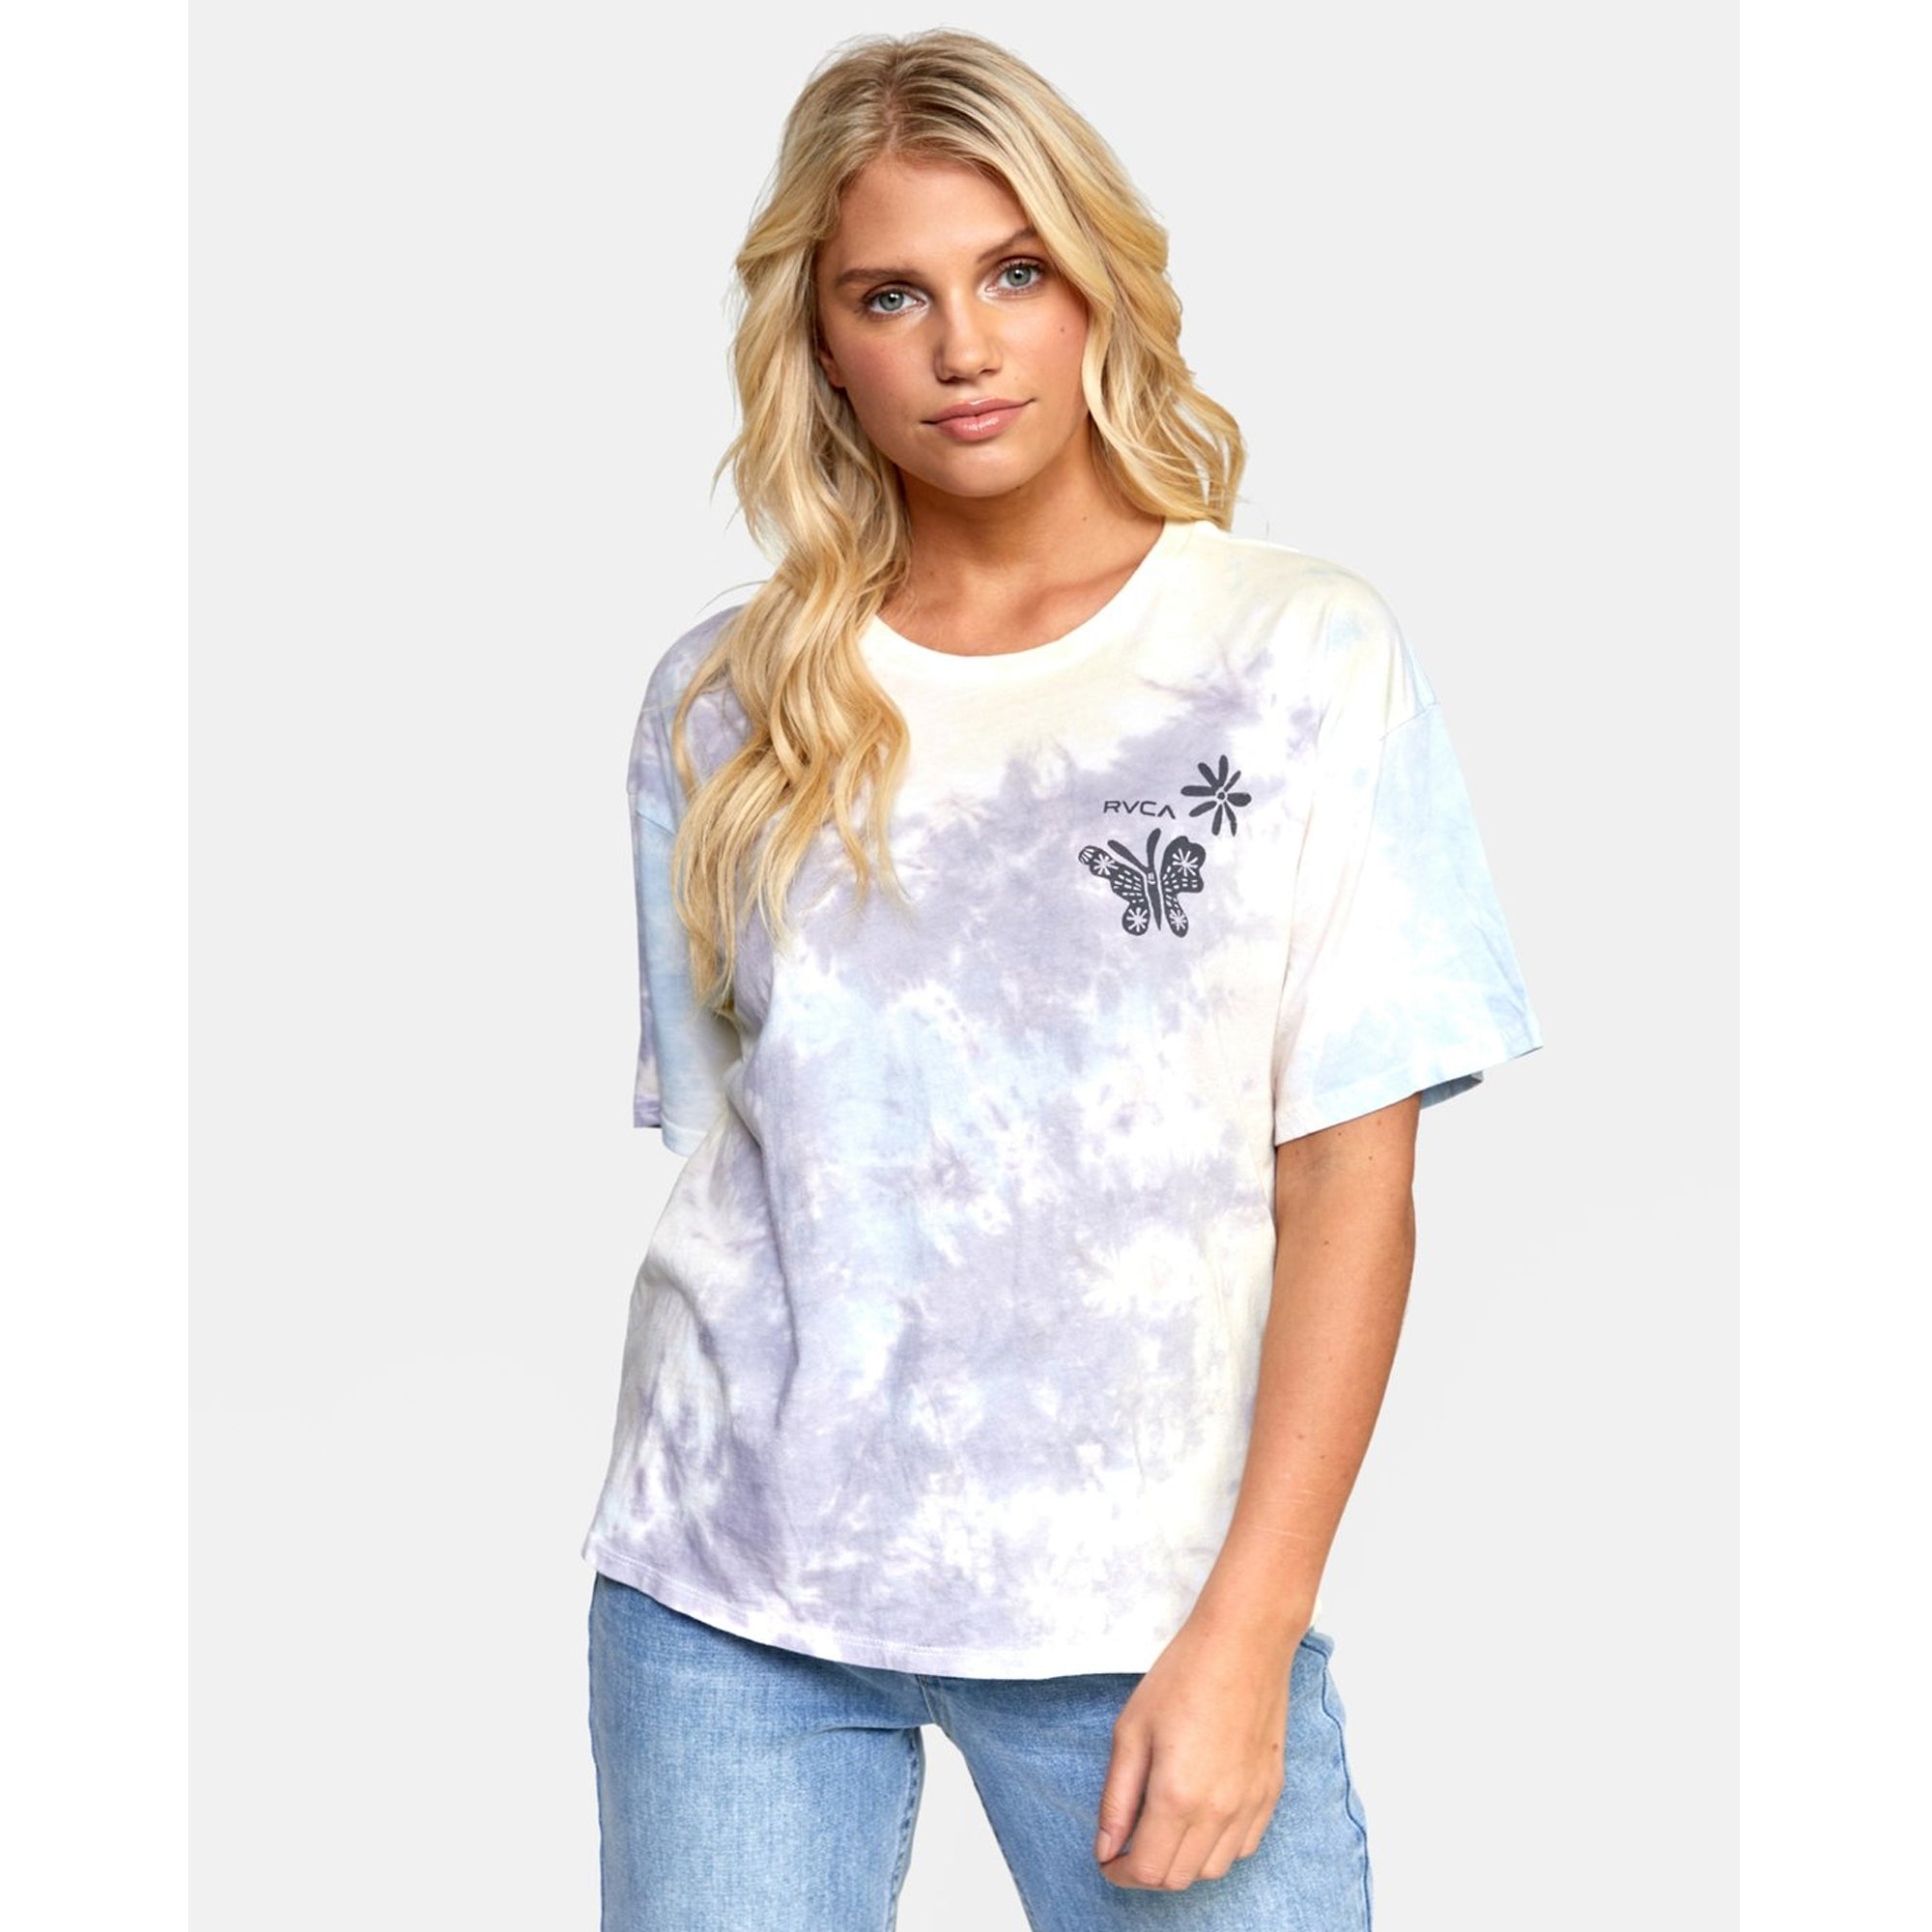 RVCA Michelle Women's S/S T-Shirt